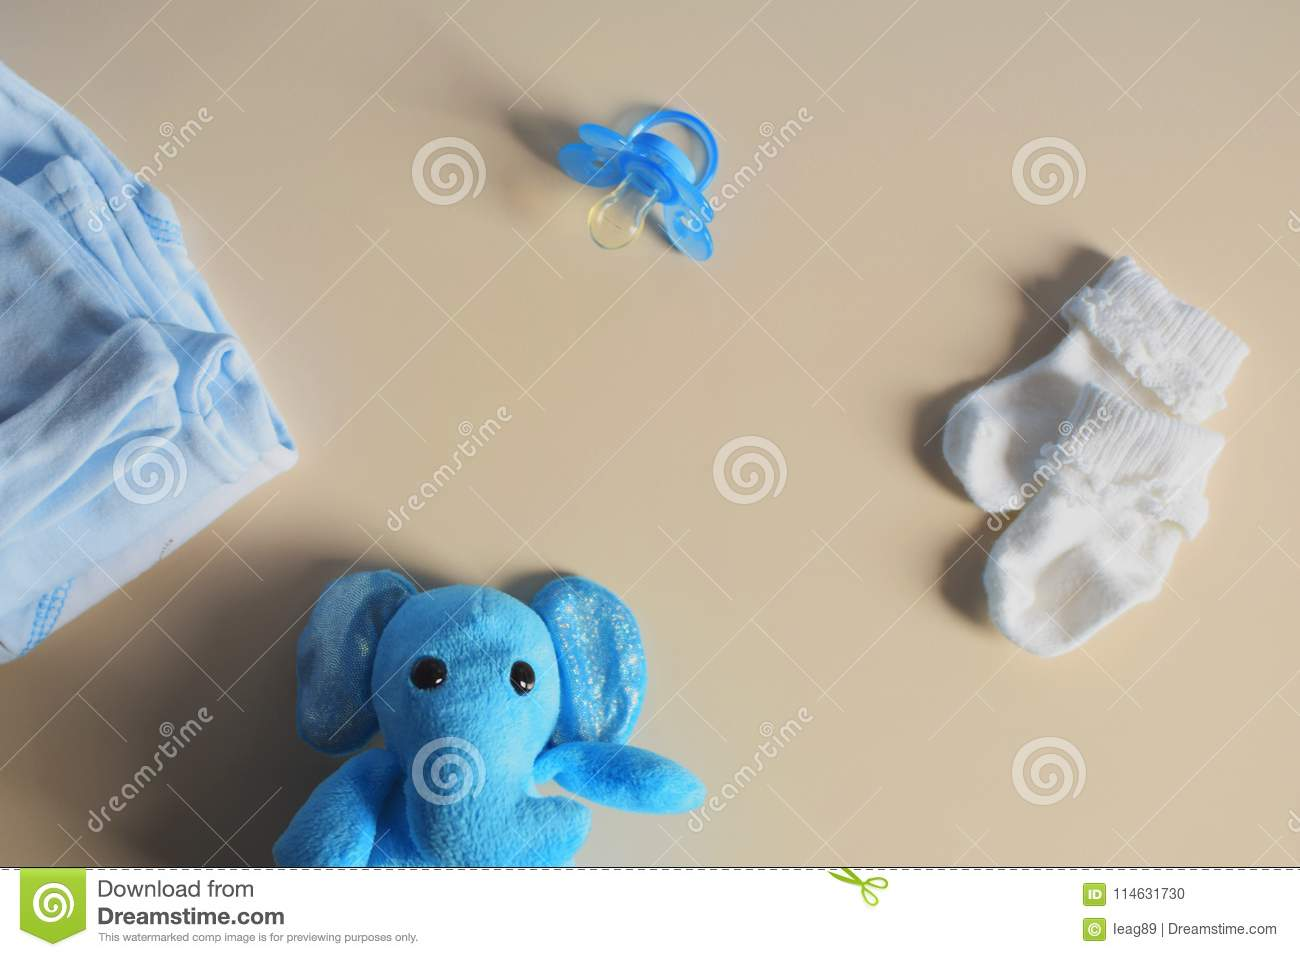 Blue toy elephant and baby clothes